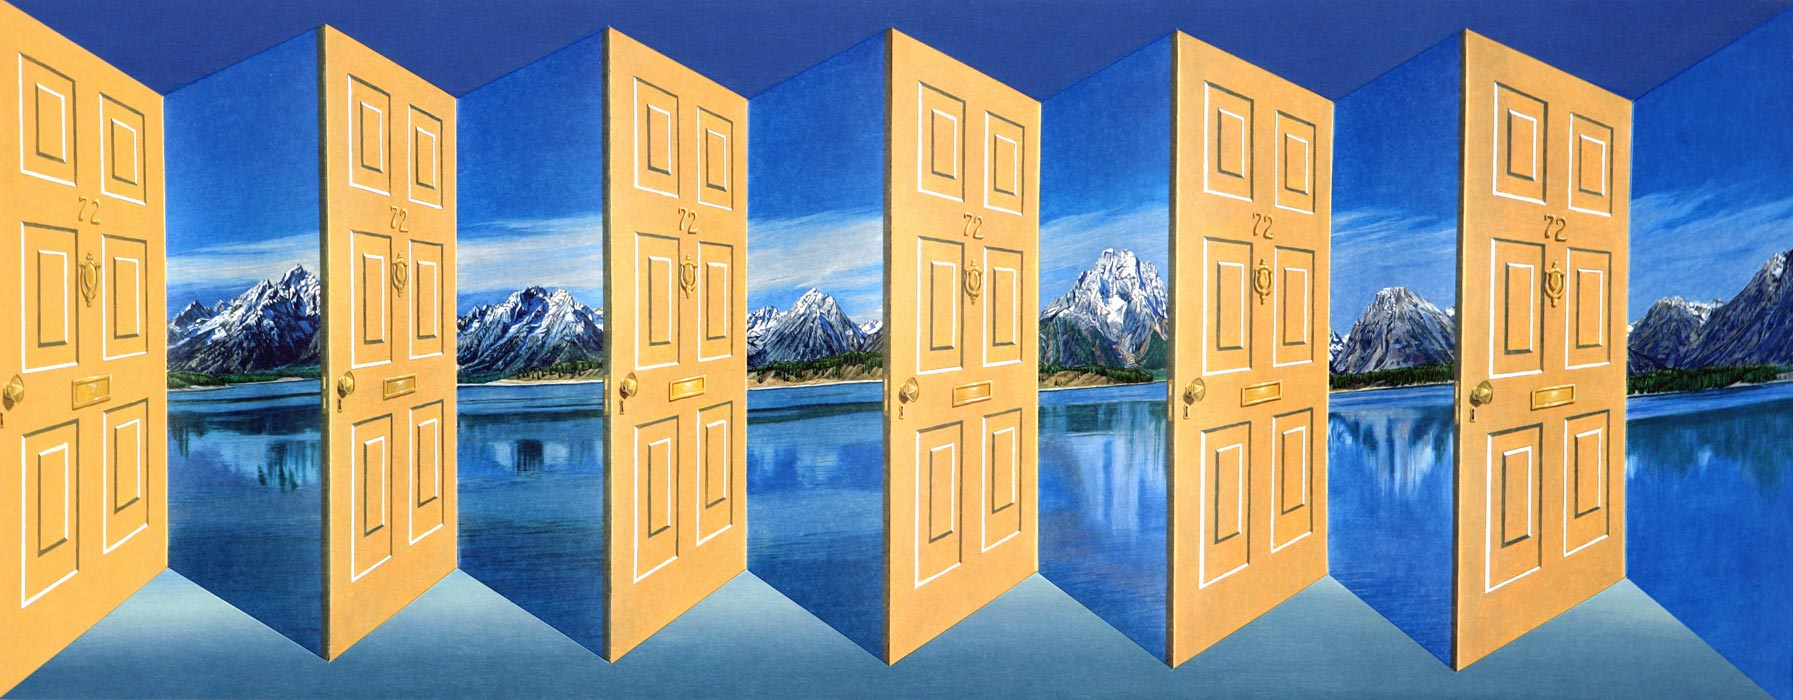 Grand Tetons <p>2006 | Edition 45 | 46.5 x 97 x 14.5 cm / 18¼ x 38¼ x 5¾ in</p>